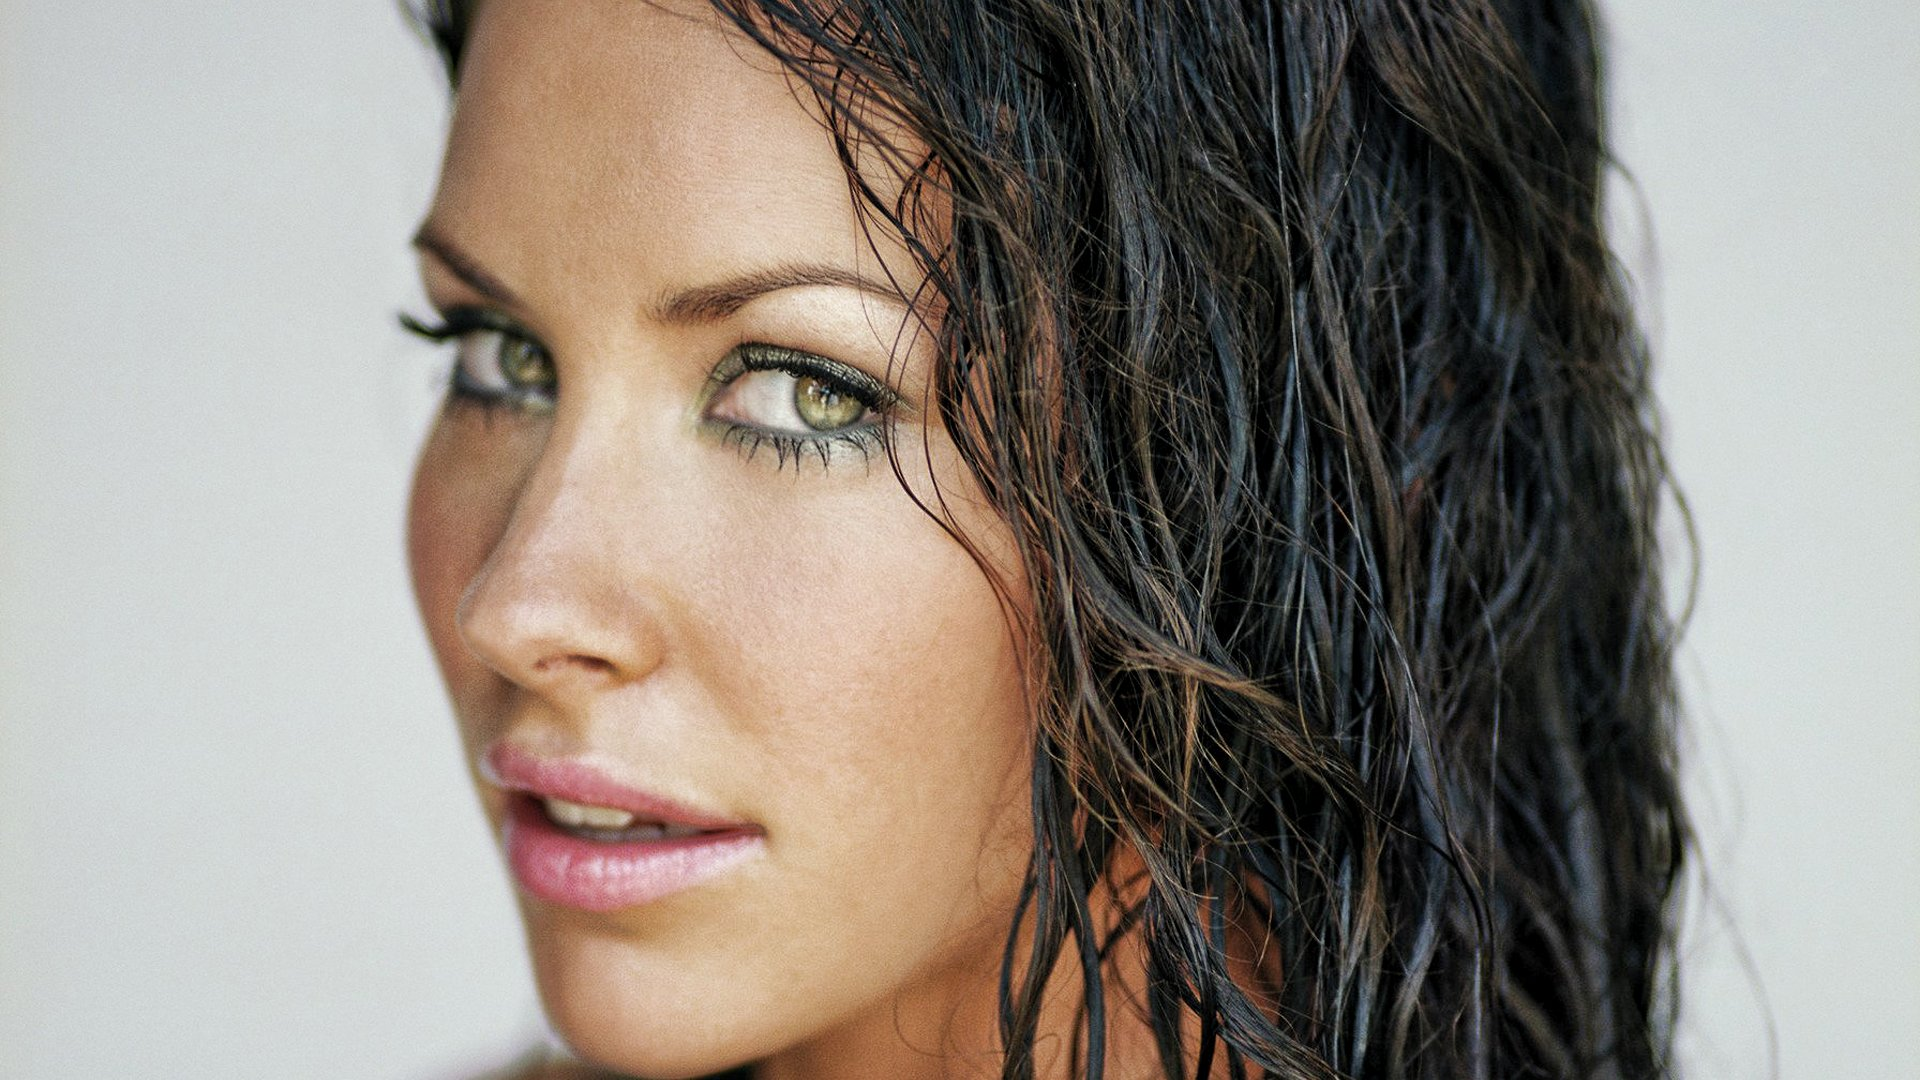 evangeline lilly wallpaper   ForWallpapercom 1920x1080